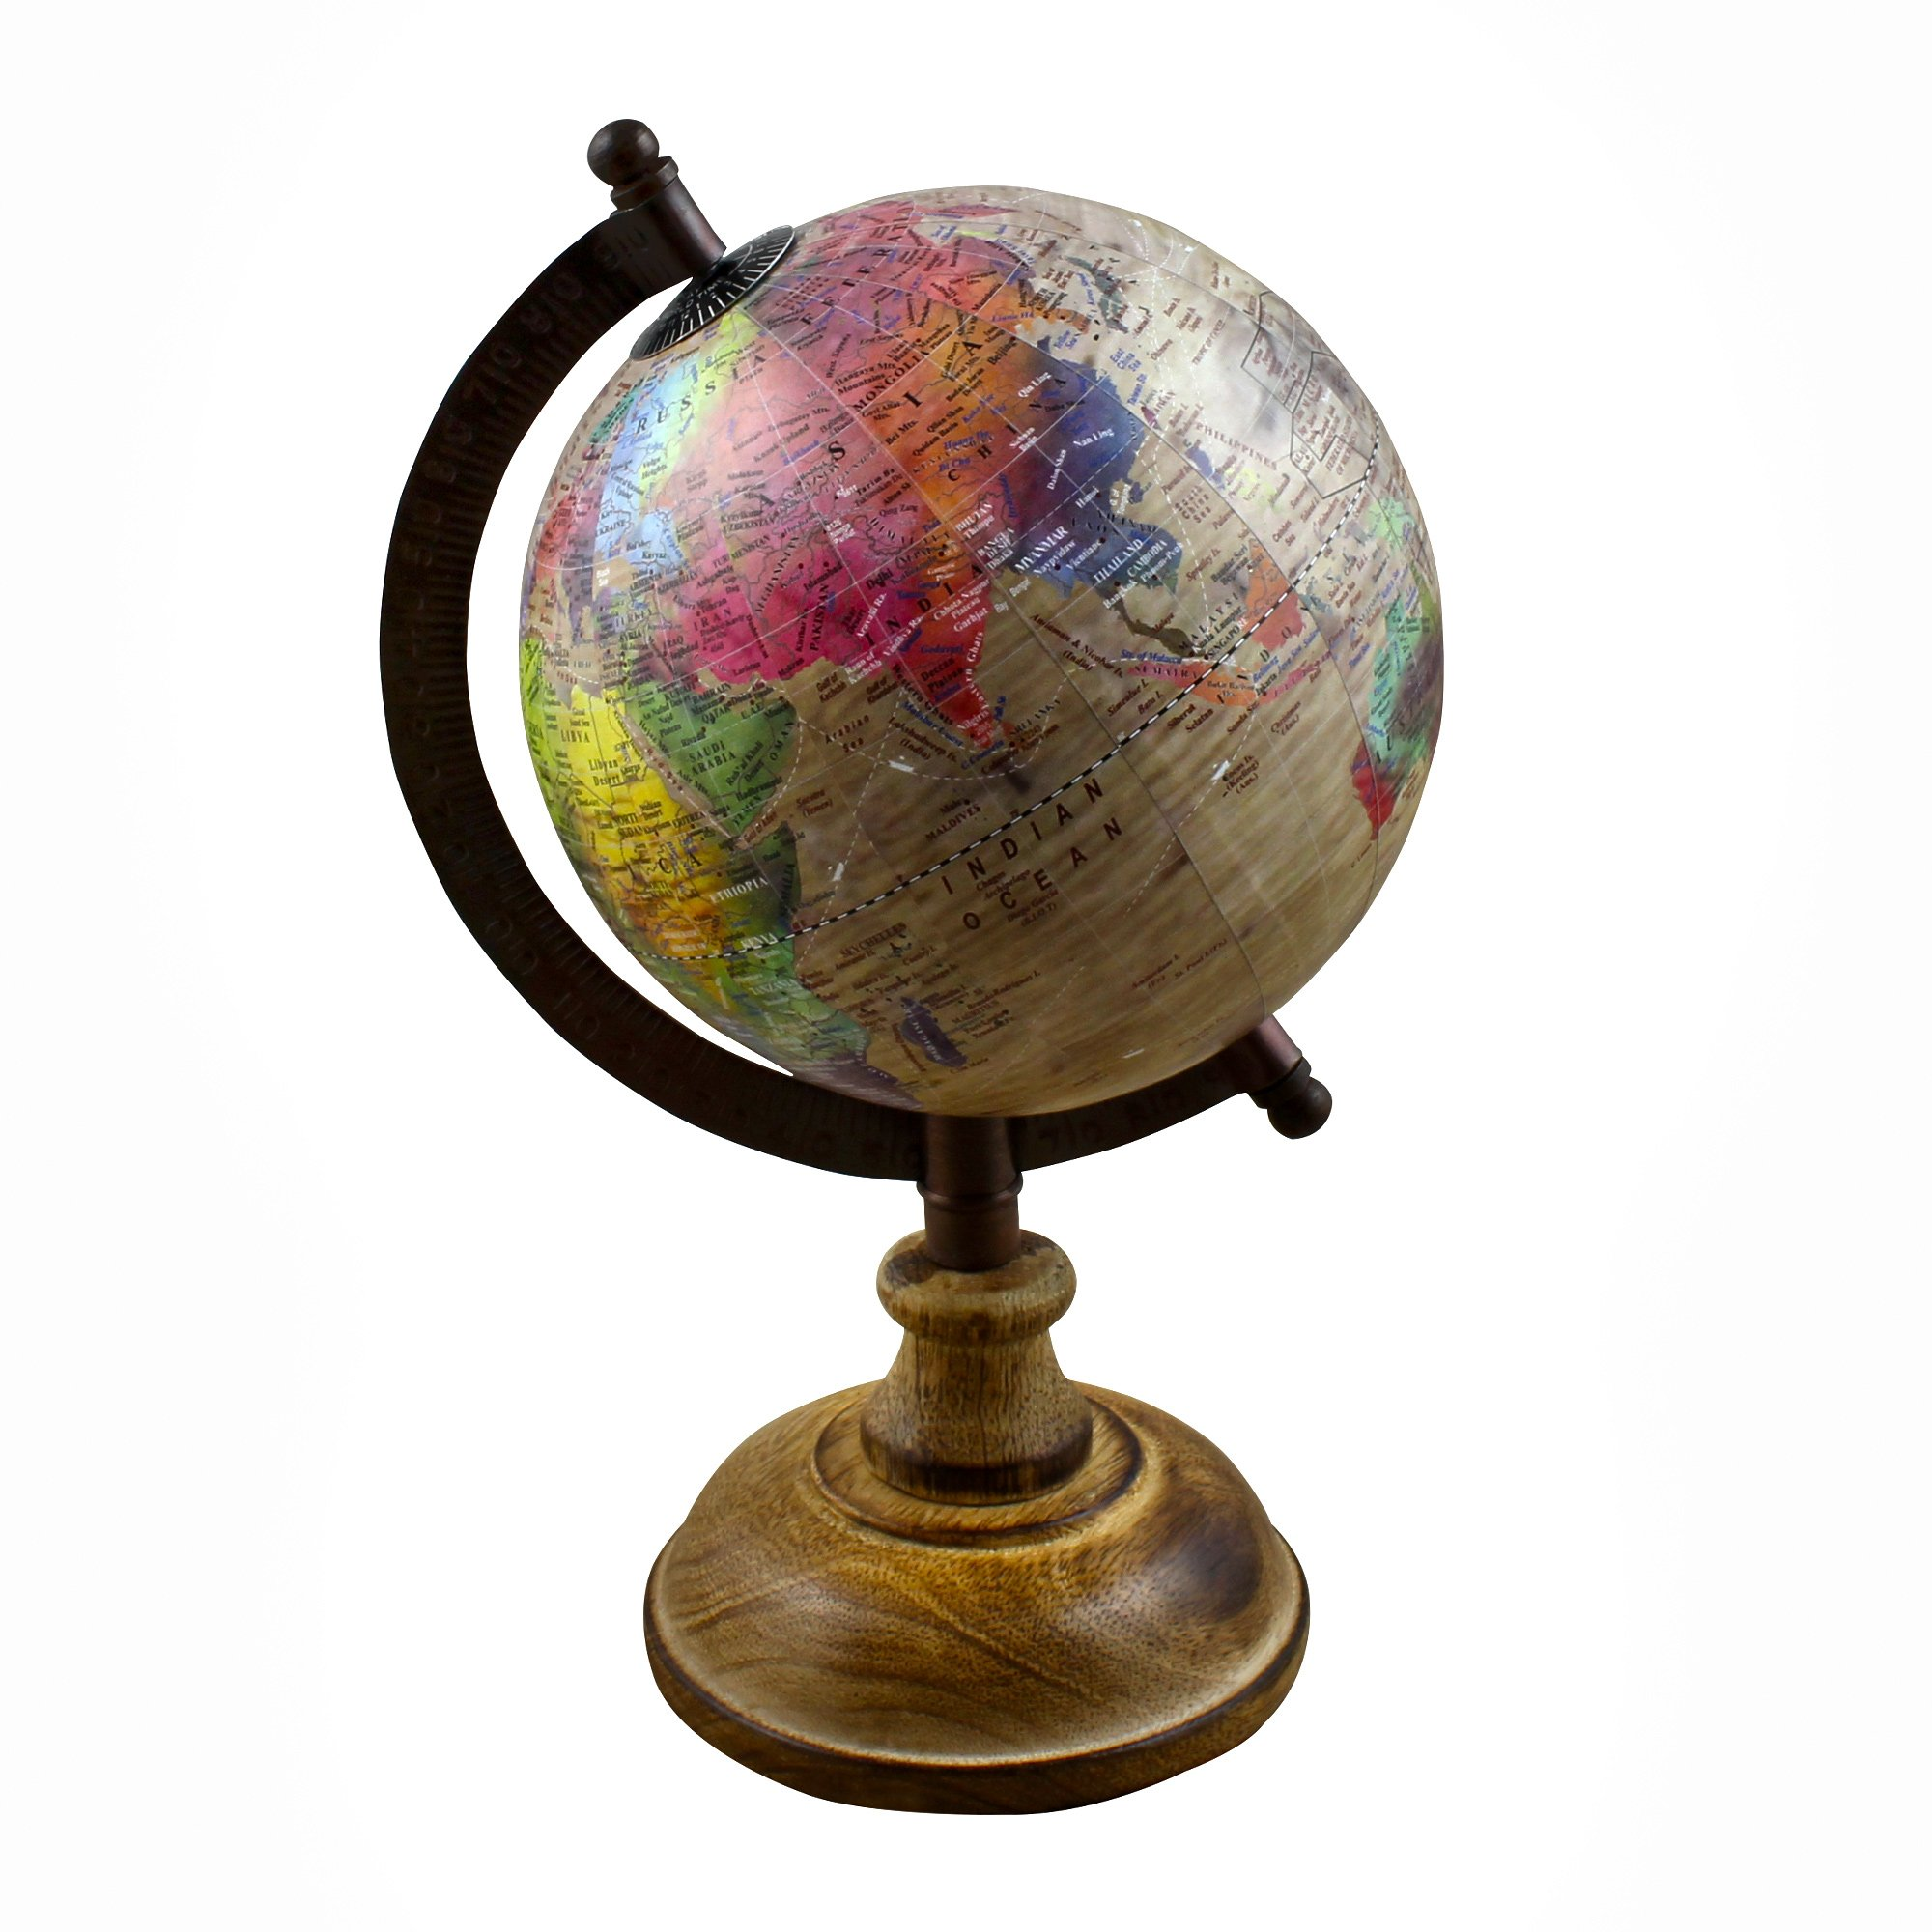 Fathers Day Gifts!! Desktop Political Globe World Map with Stand Learning Resources for Teachers, Table Décor, Office & School, 9.5 Inches